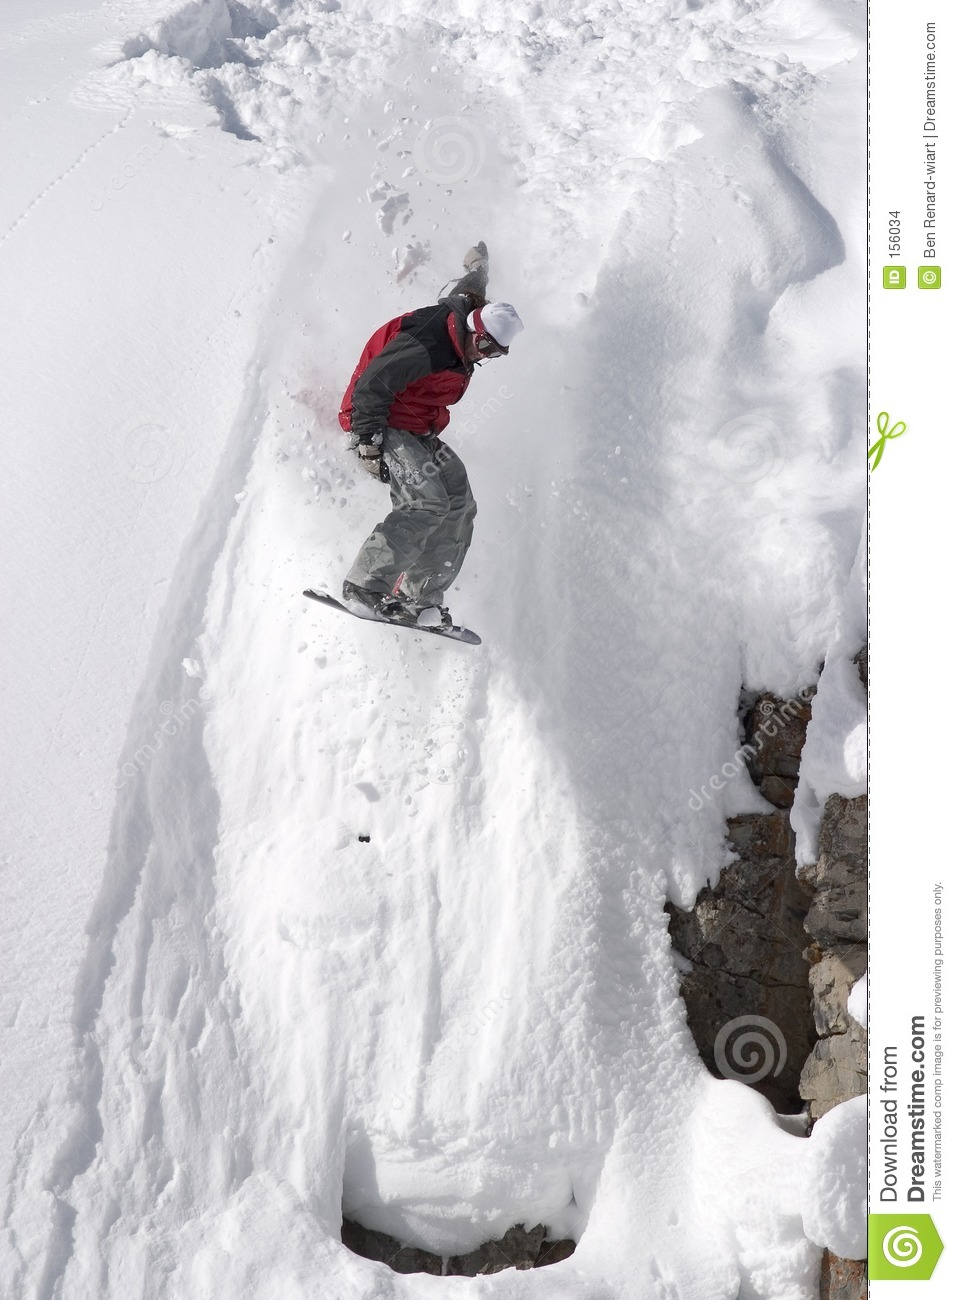 Snowboard jump from a cliff in the powder